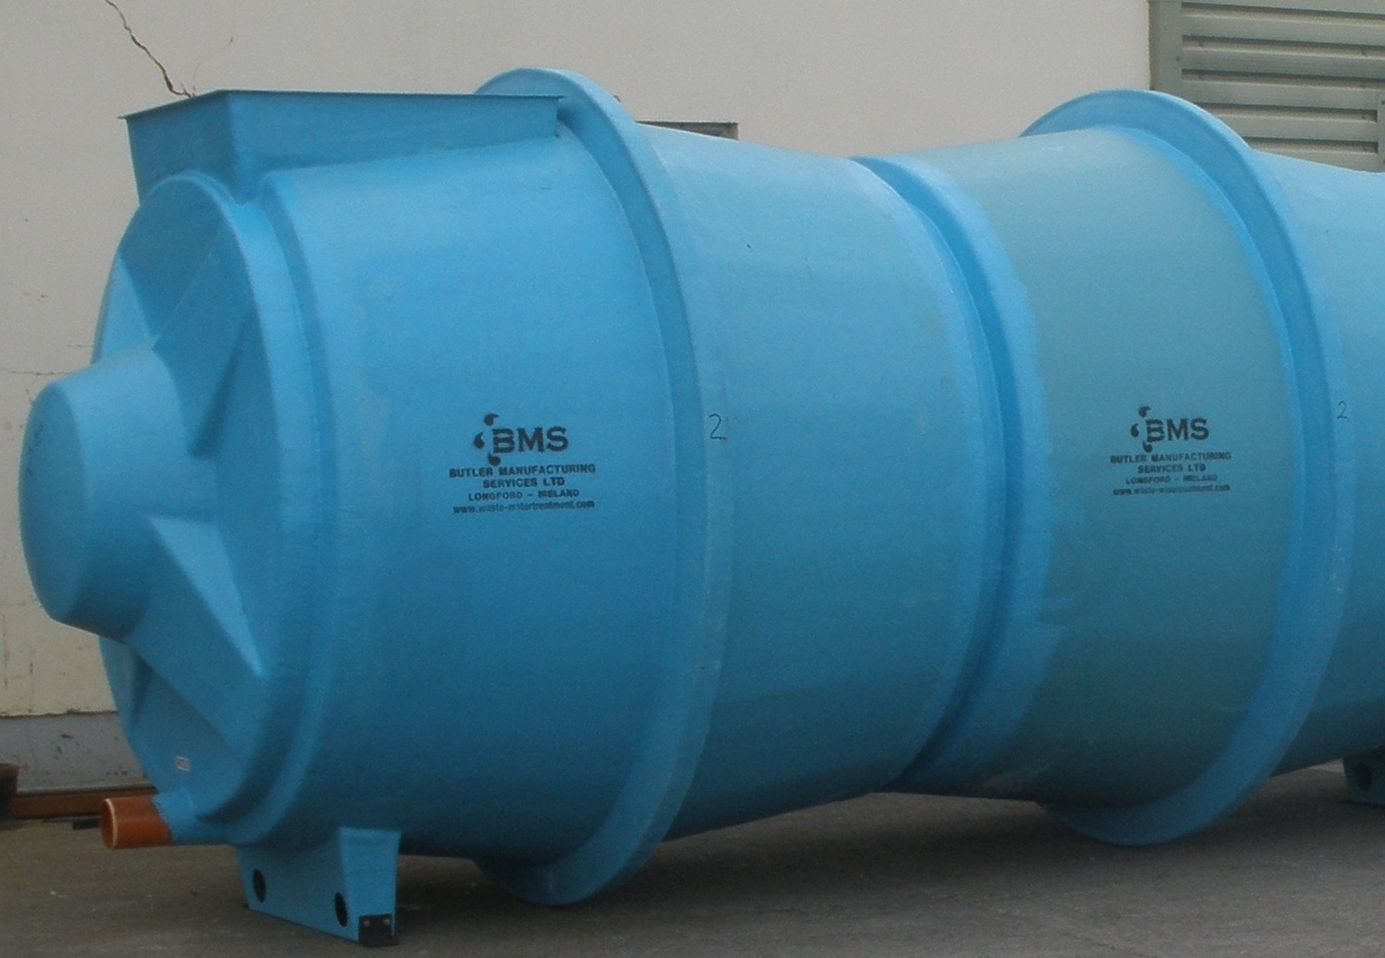 An example of a standard horizontal sewage settlement tank